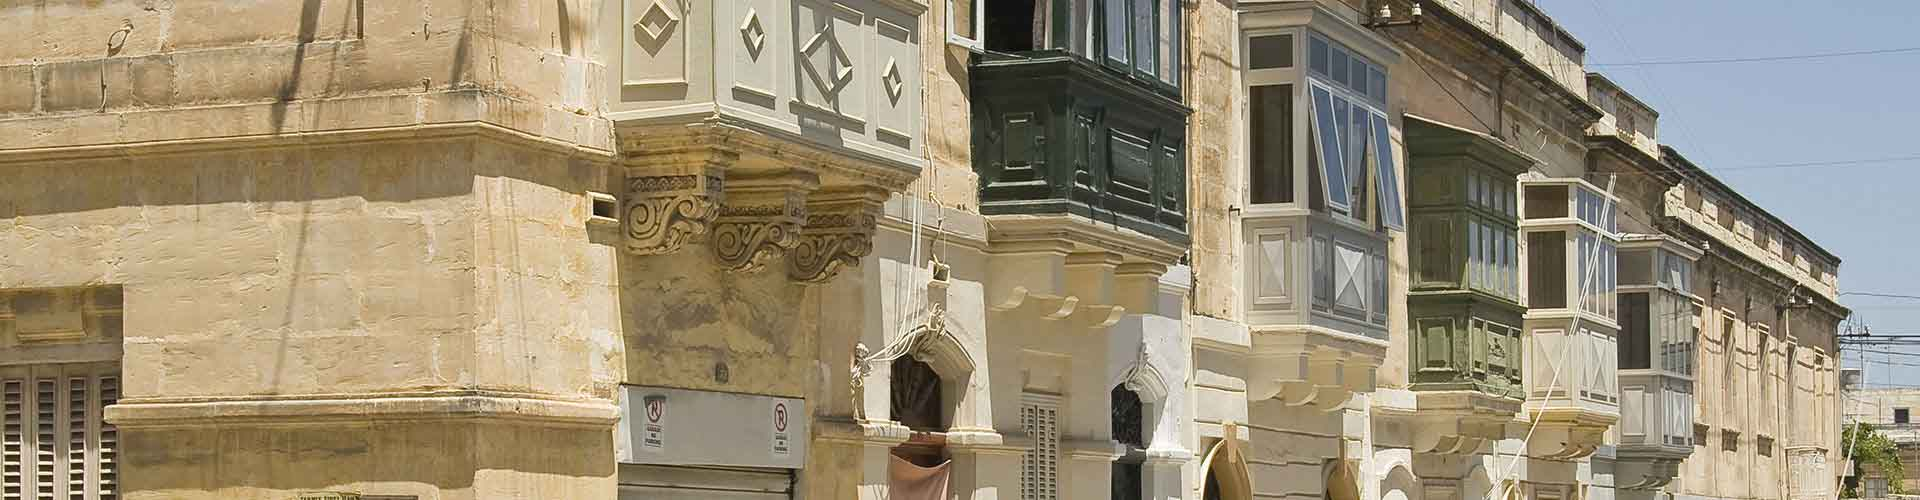 Tarxien – Hostels in Tarxien. Maps for Tarxien, Photos and Reviews for each hostel in Tarxien.